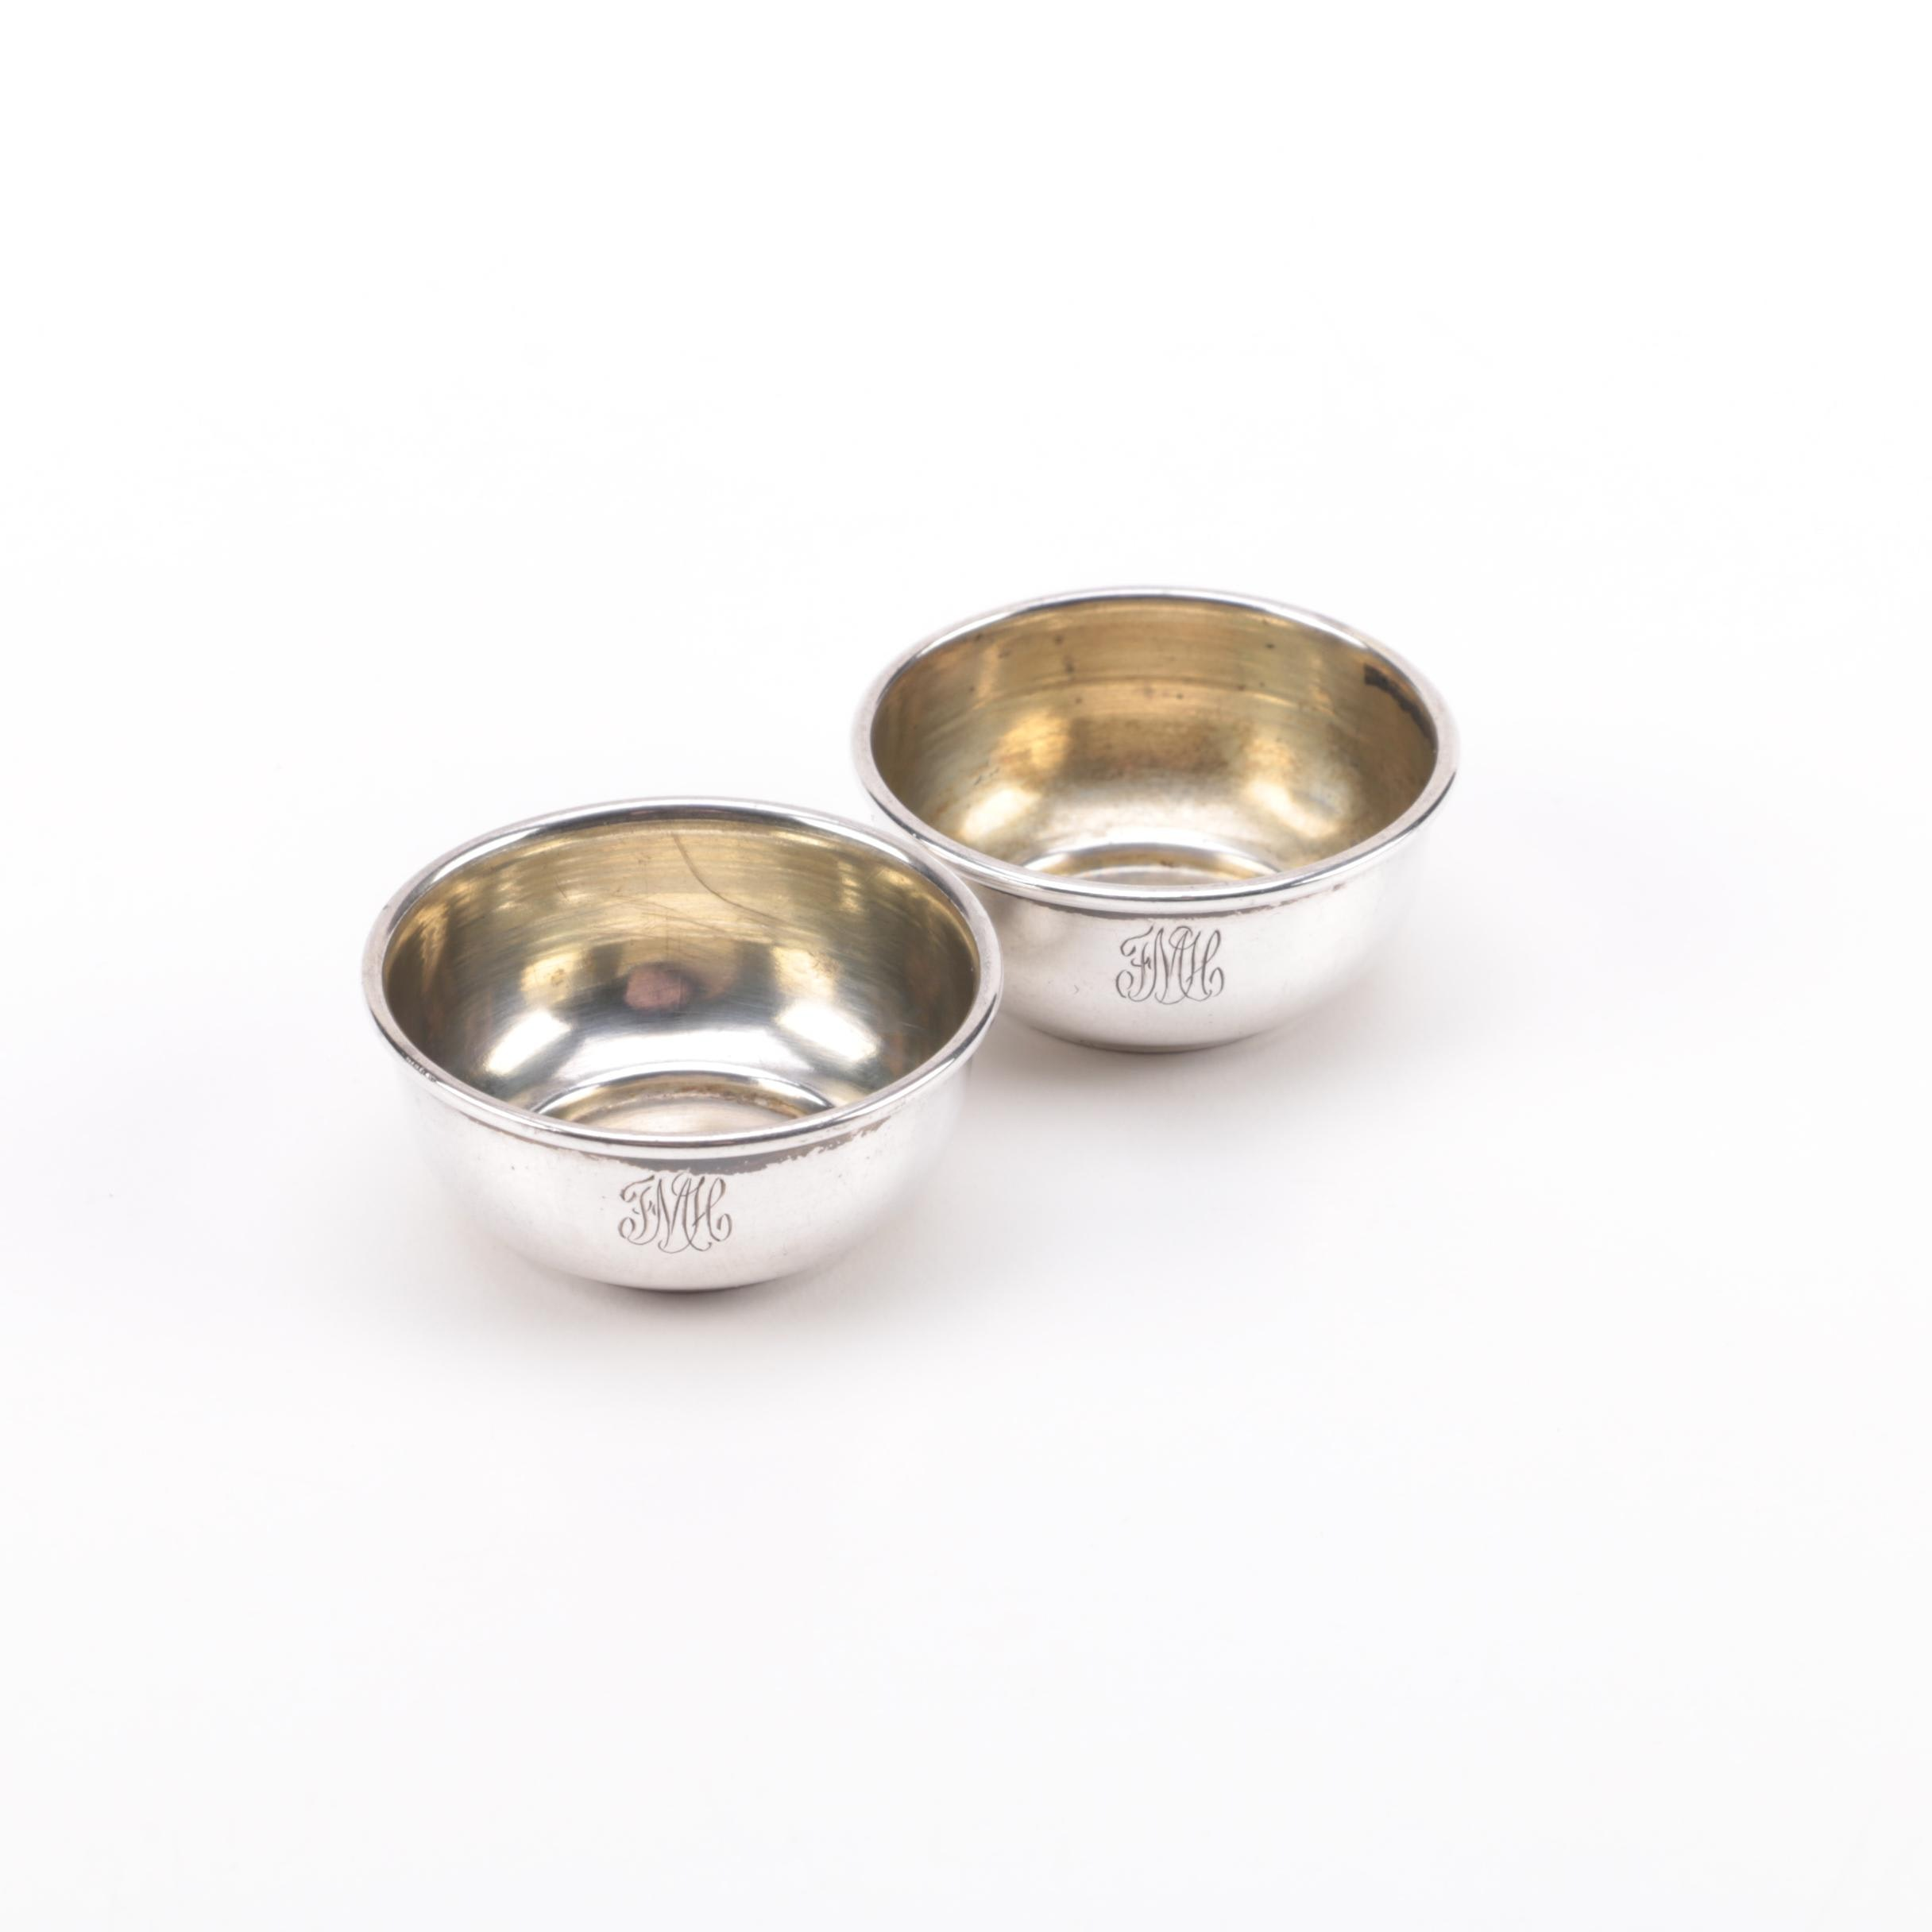 Sterling Silver Salt Cellars